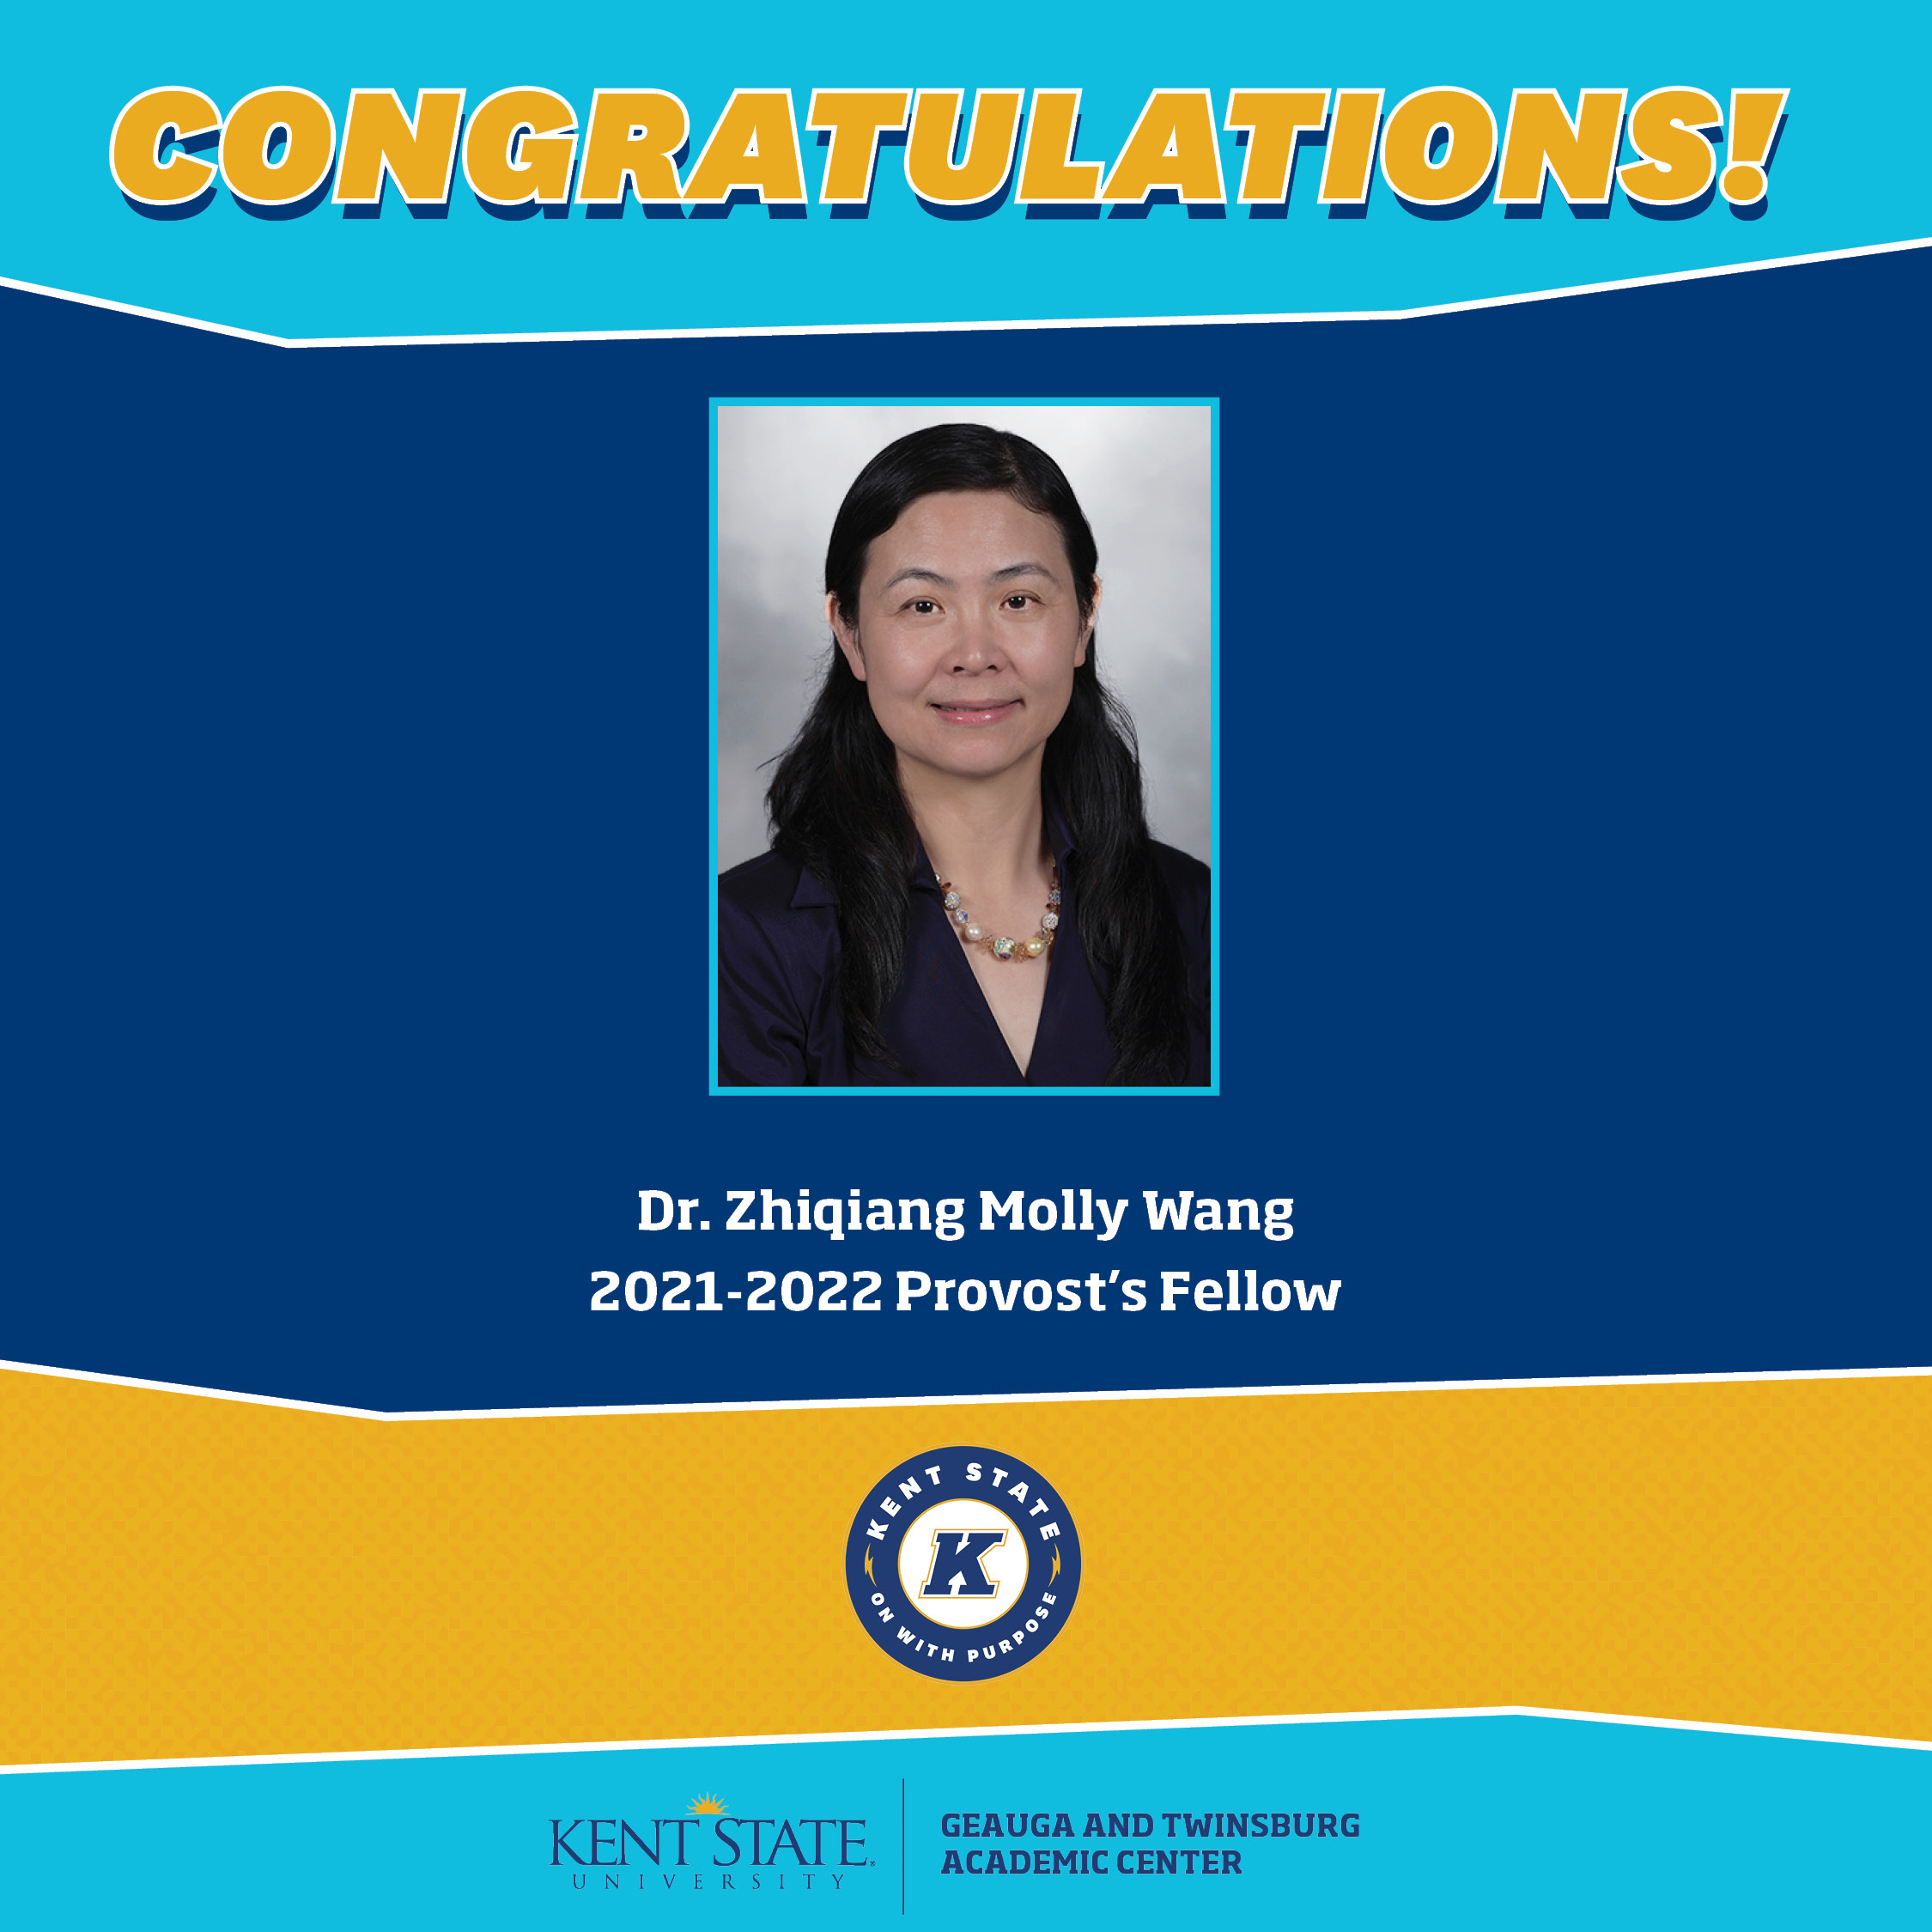 Congratulations Dr. Zhiqiang Molly Wang 2021-2022 Provost's Fellow